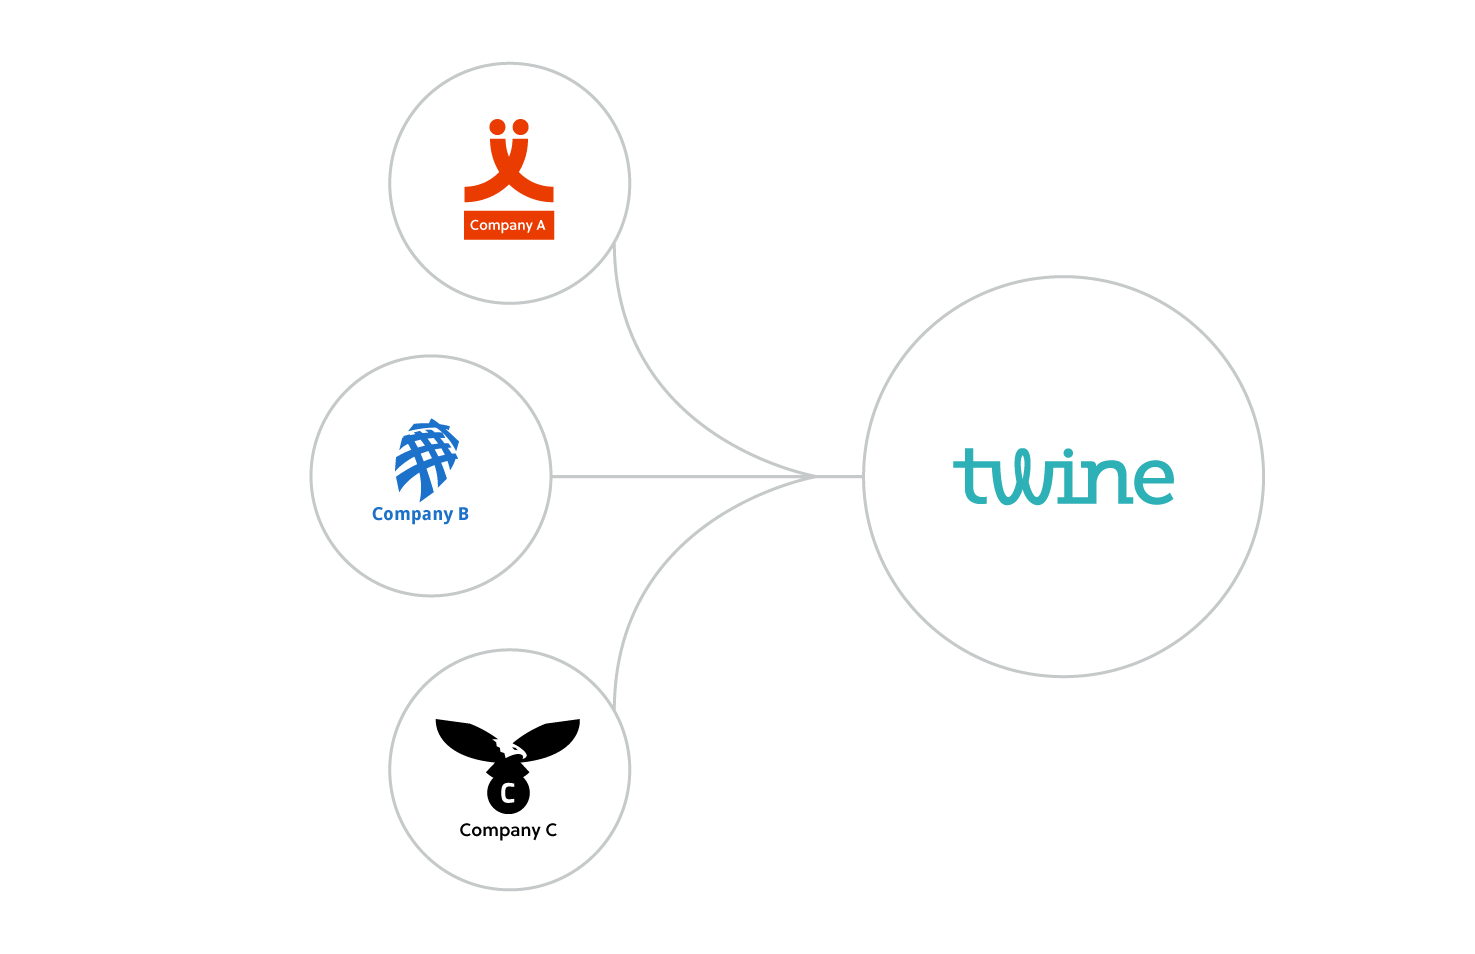 twine joint development spread costs